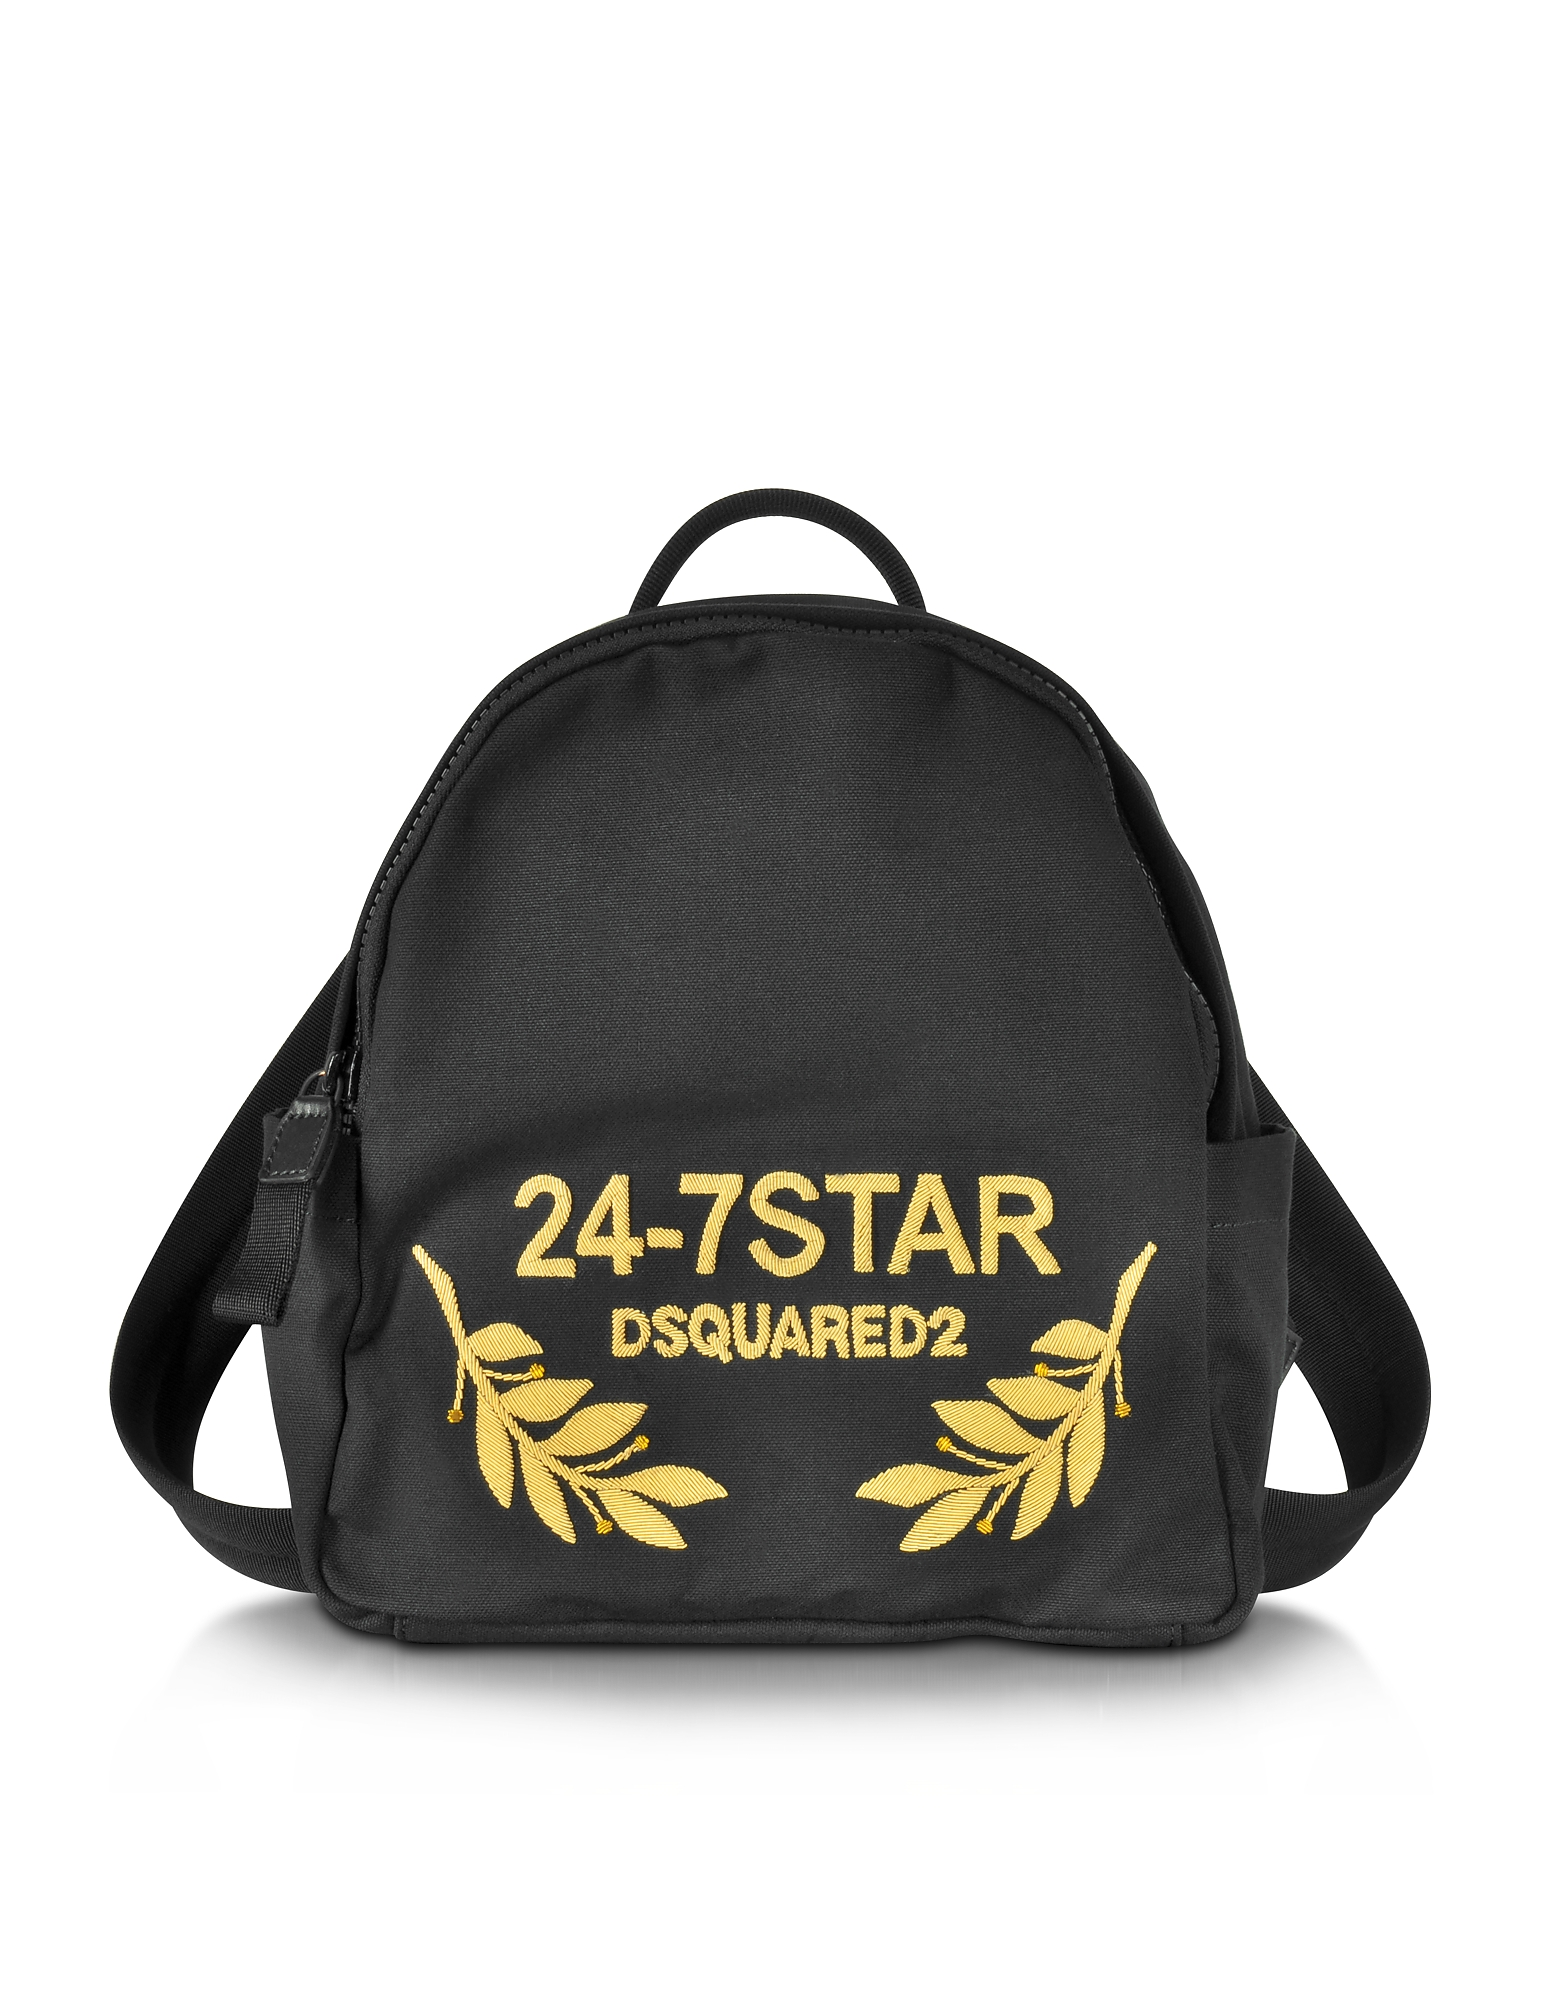 DSquared2 Handbags, 24-7 Star Icon Black Canvas Small Backpack